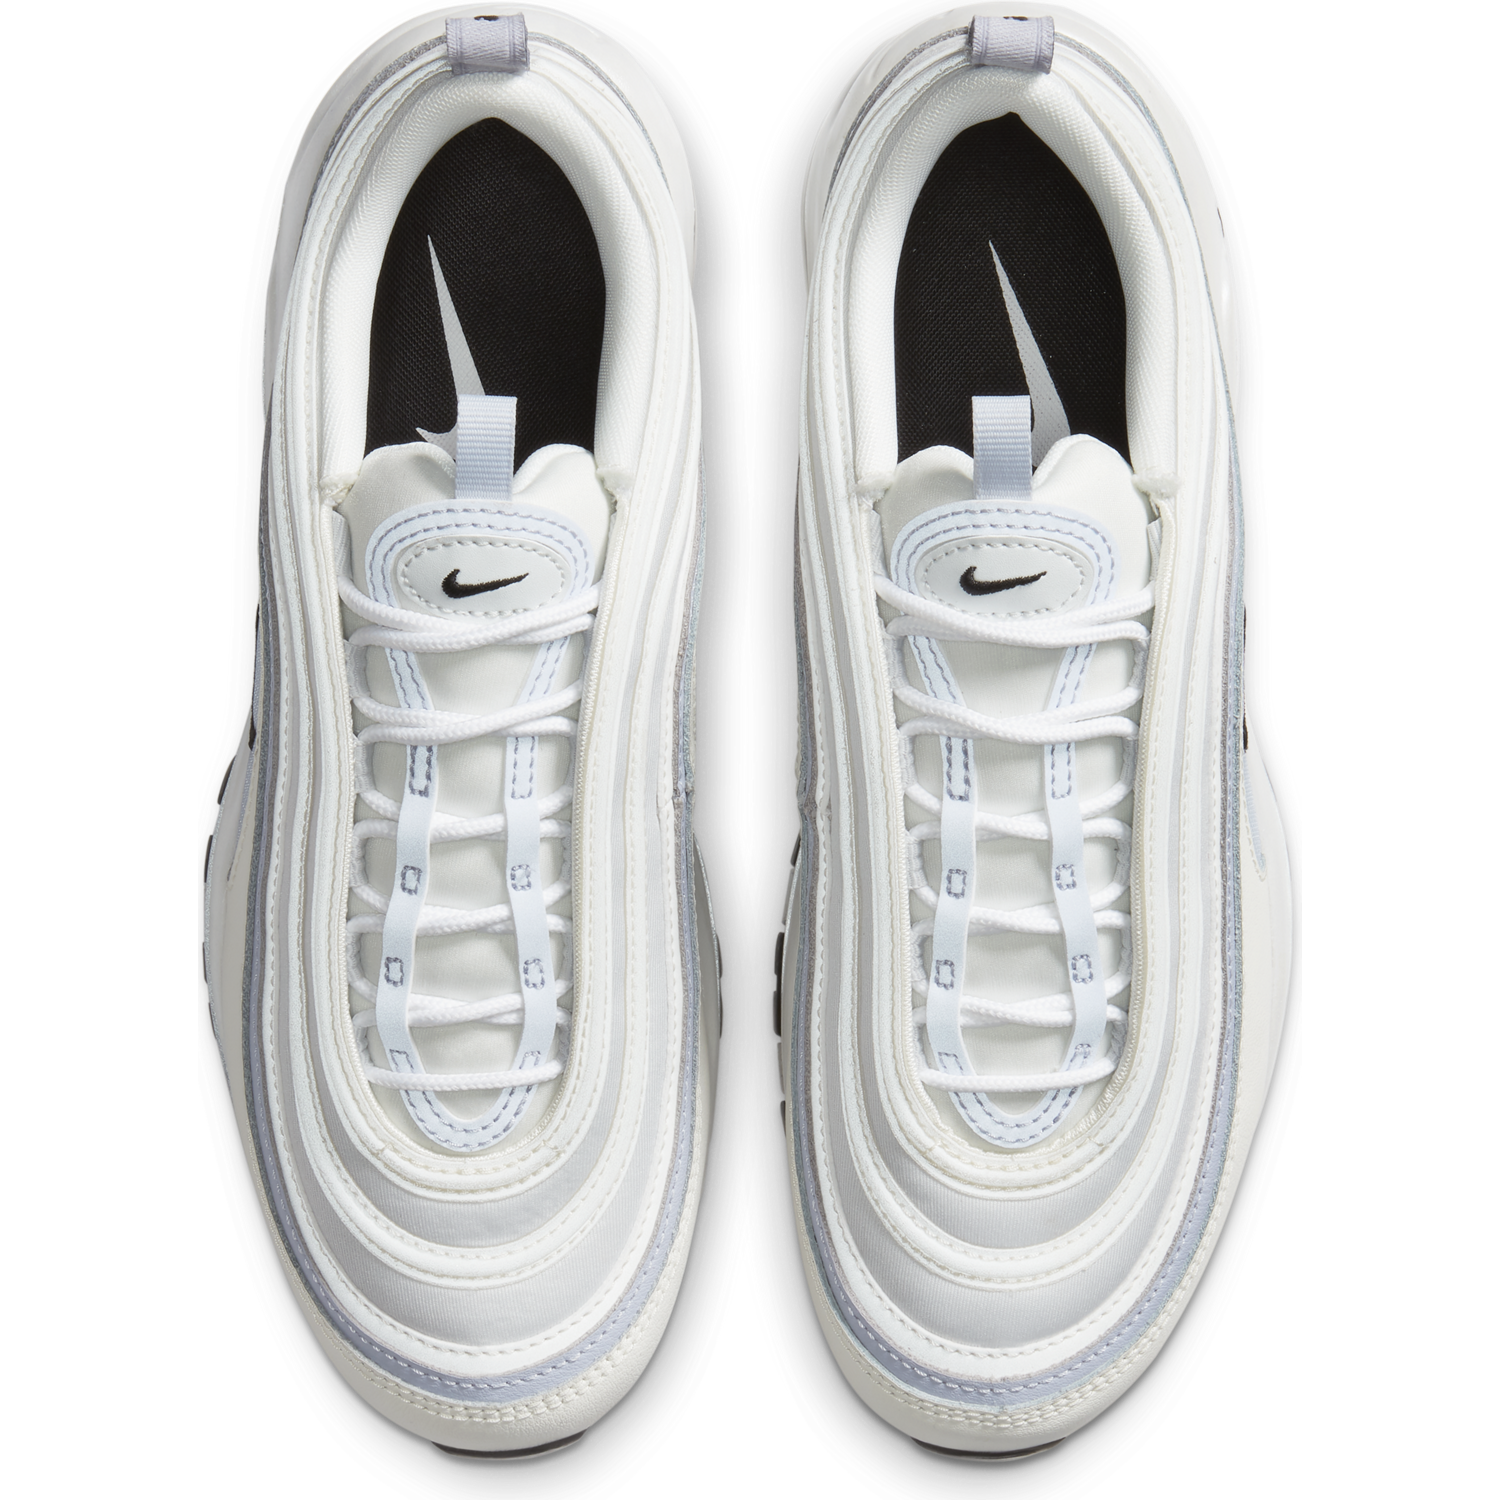 NIKE W'S FOOTWEAR AIR MAX 97 ESSENTIAL - SAIL/BLACK